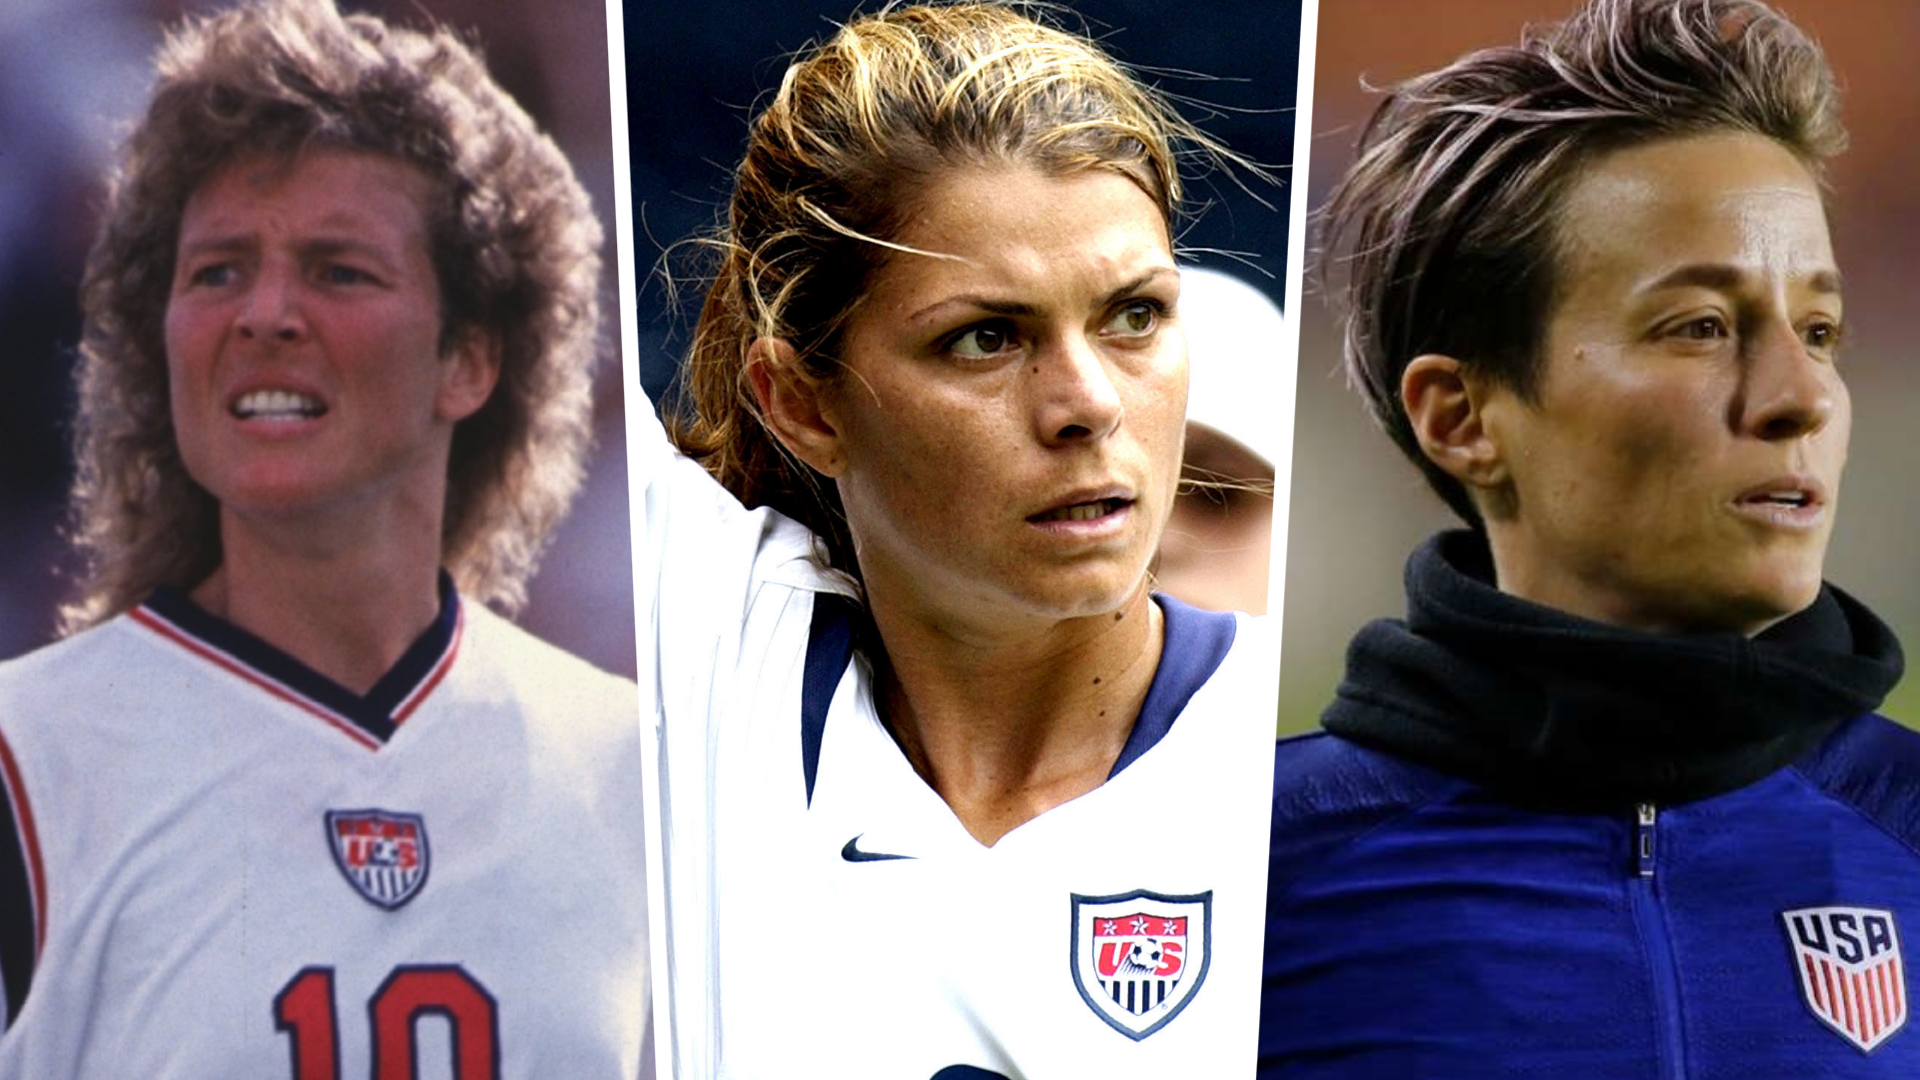 Hamm, Rapinoe, Akers and the 20 greatest USWNT players of all time